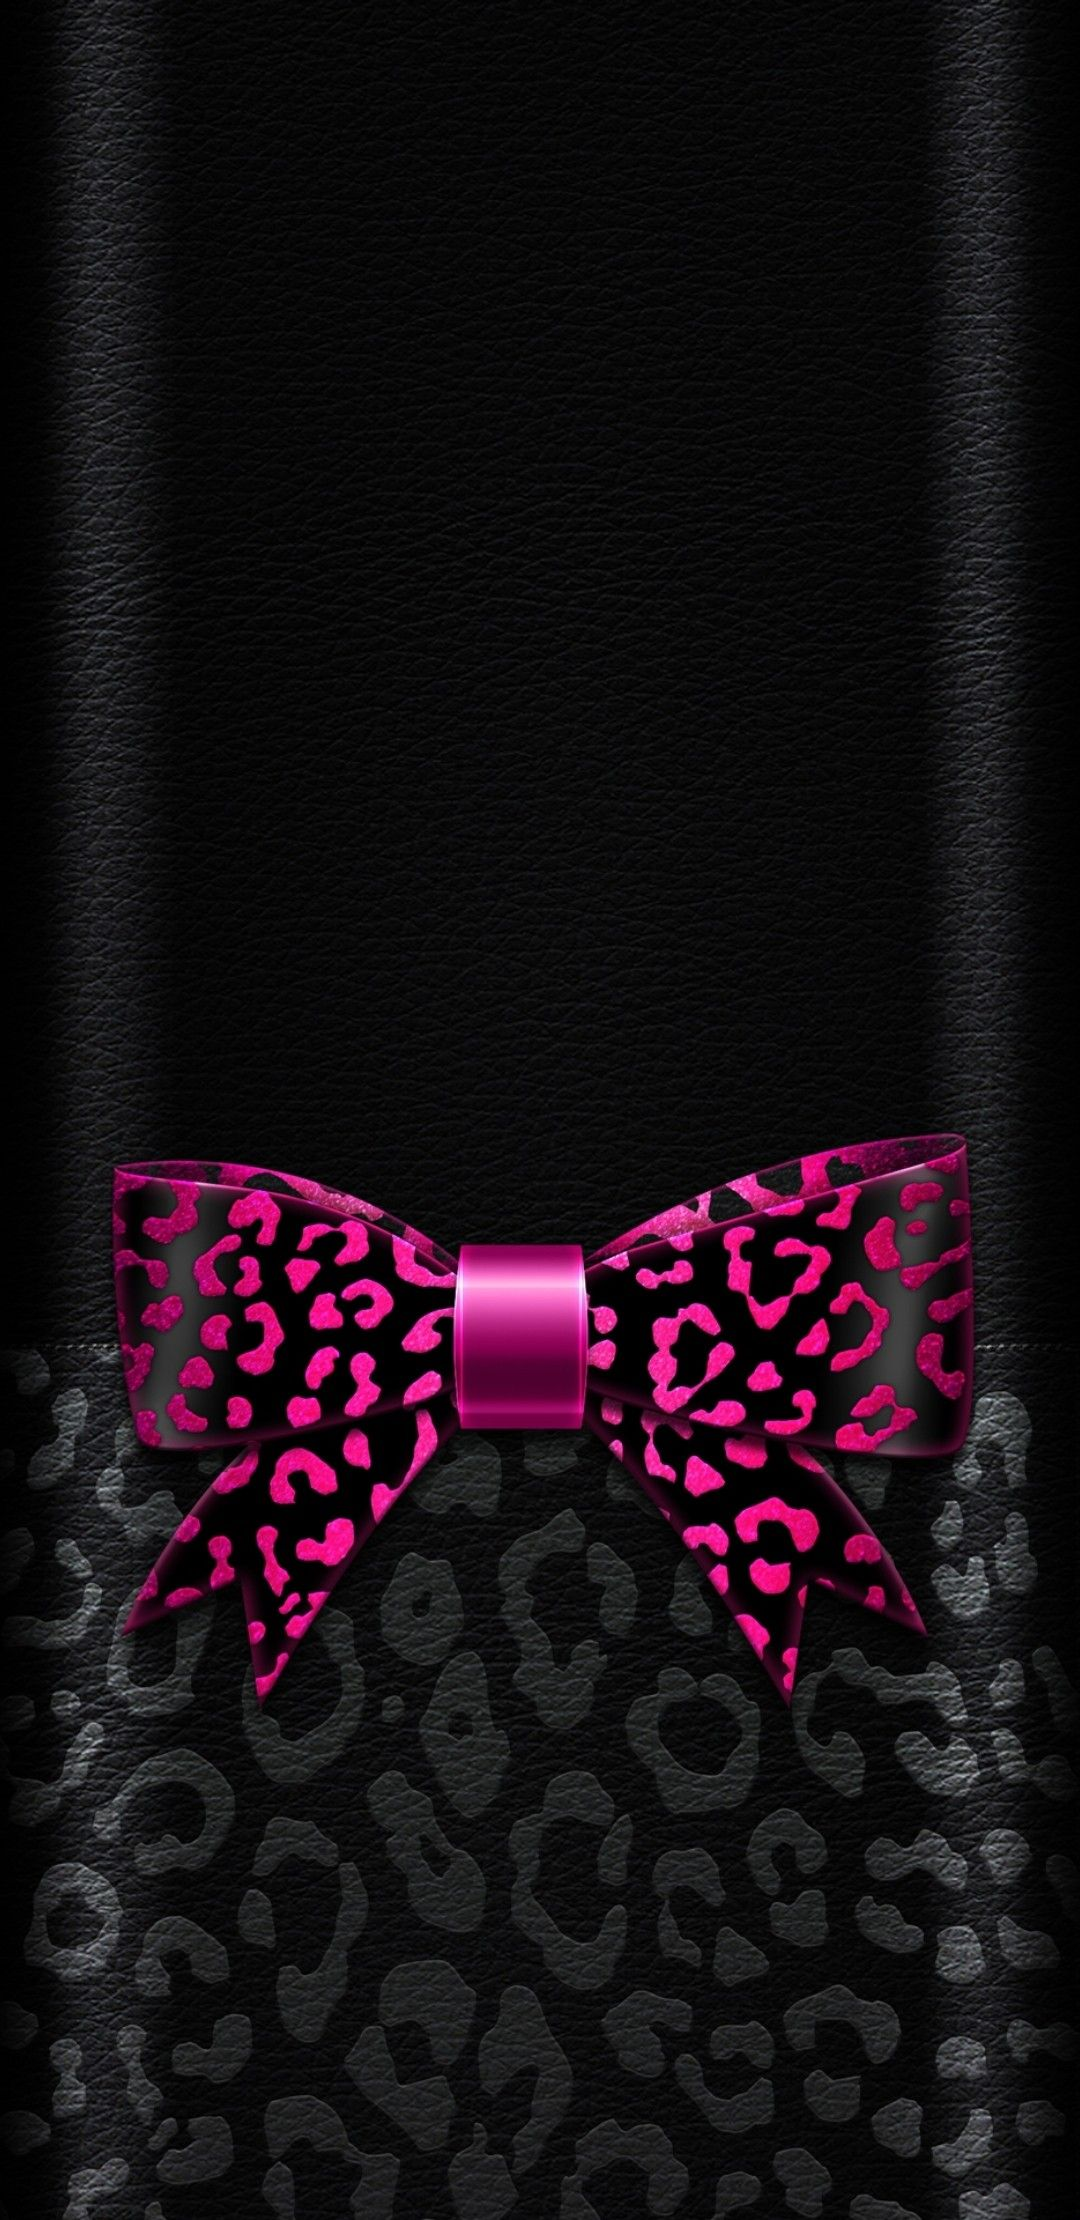 Black And Pink Bow Wallpaper Cute Girly Bow Wallpaper Iphone